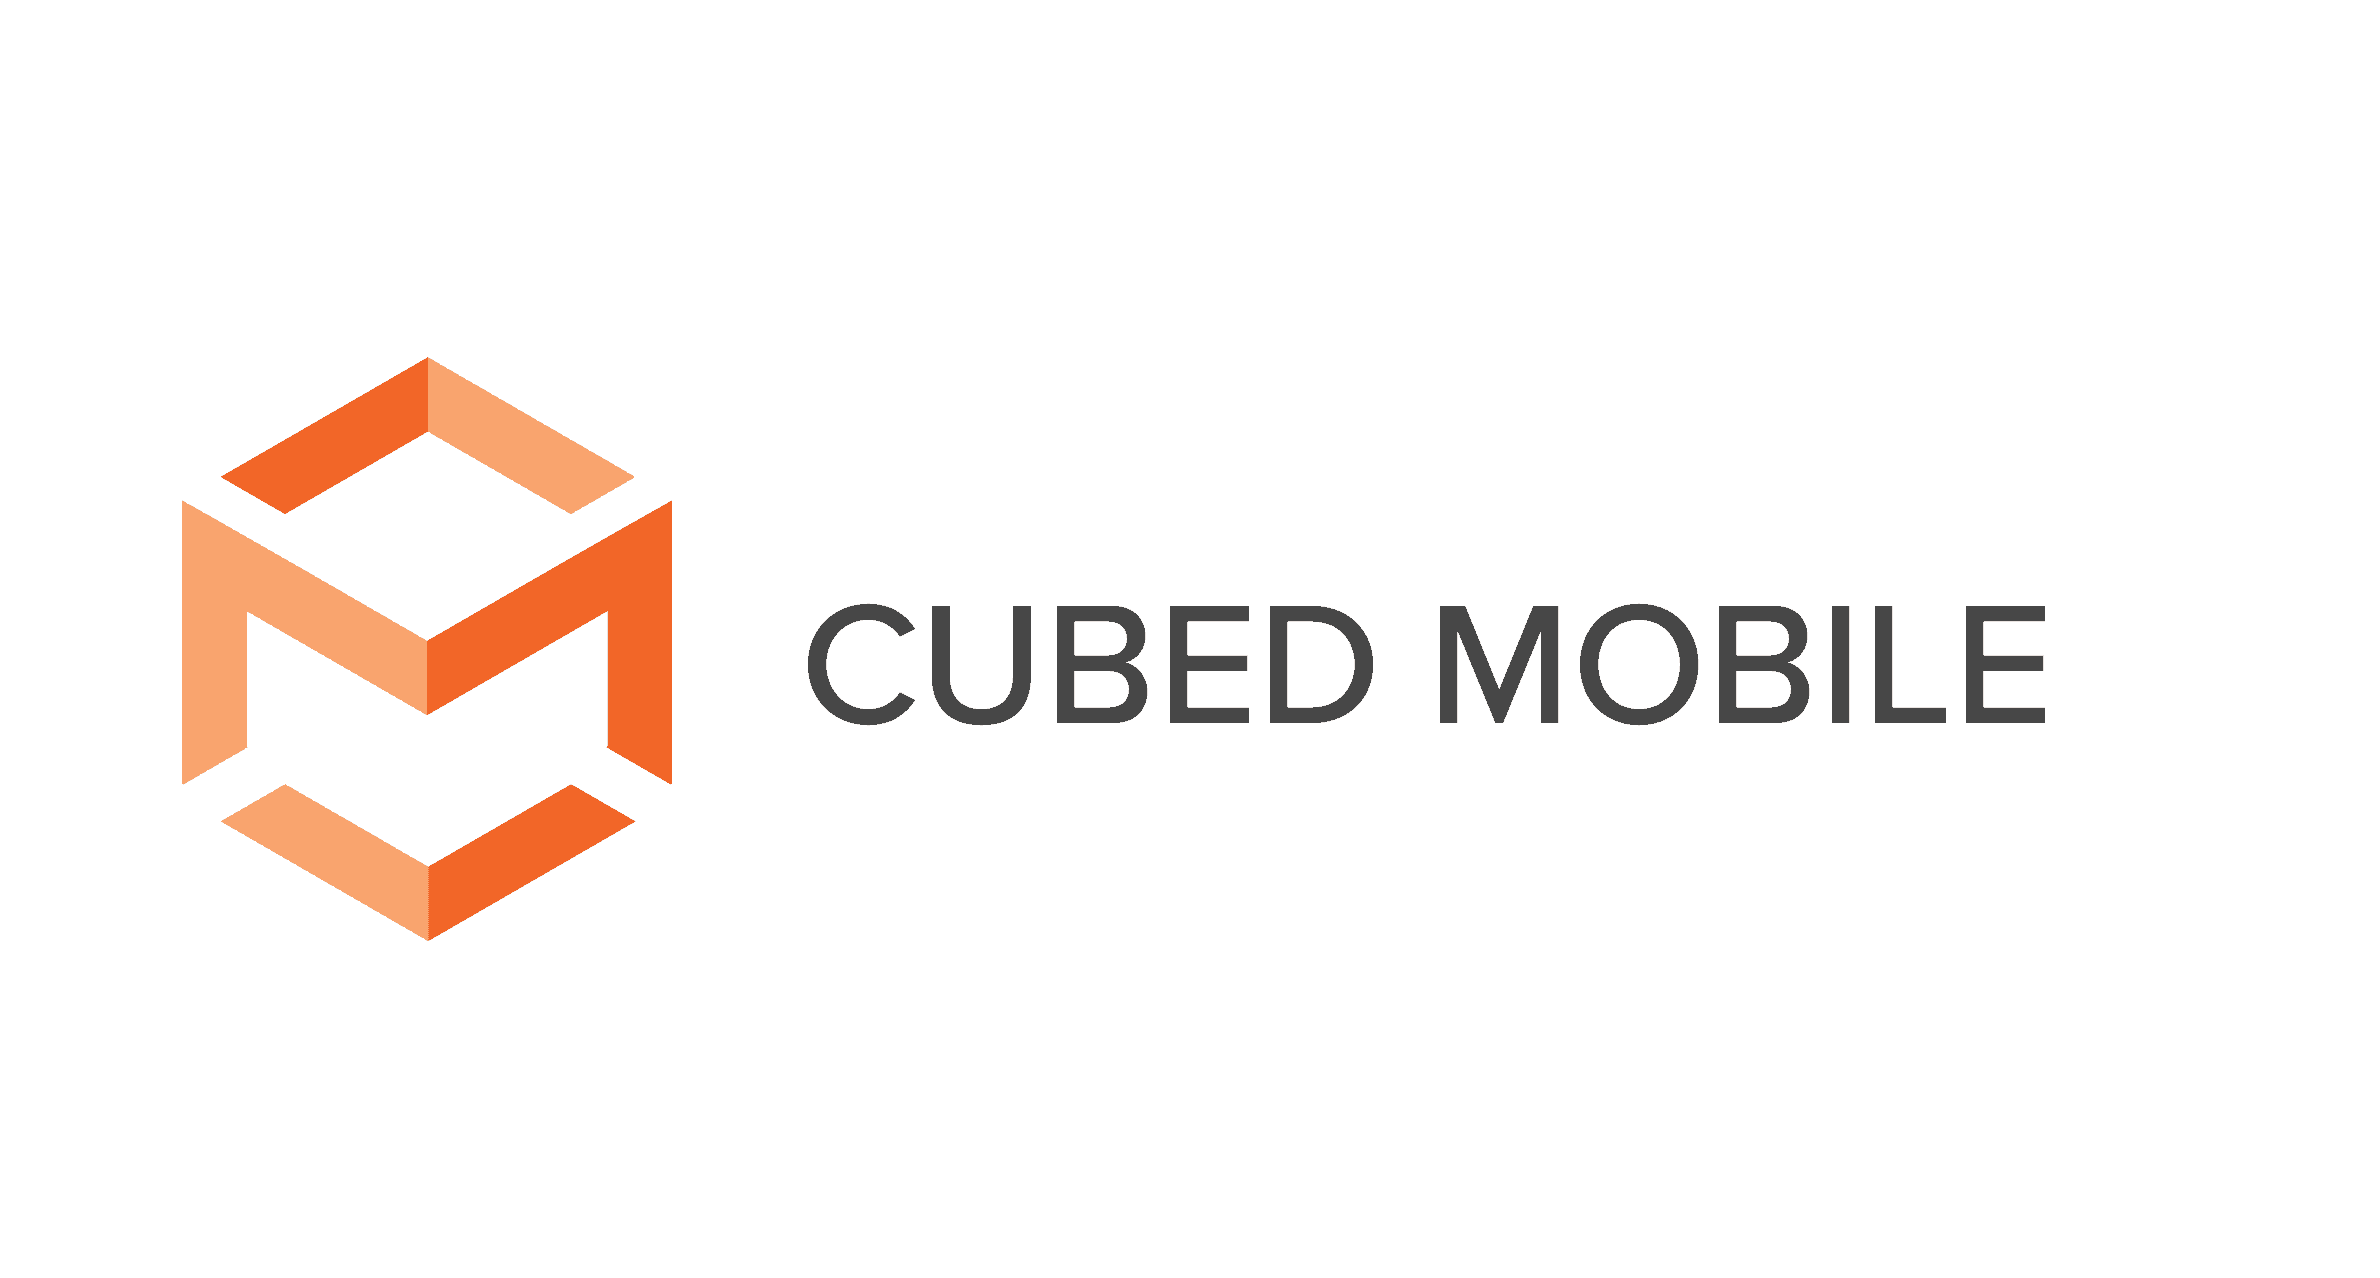 Cubed Mobile